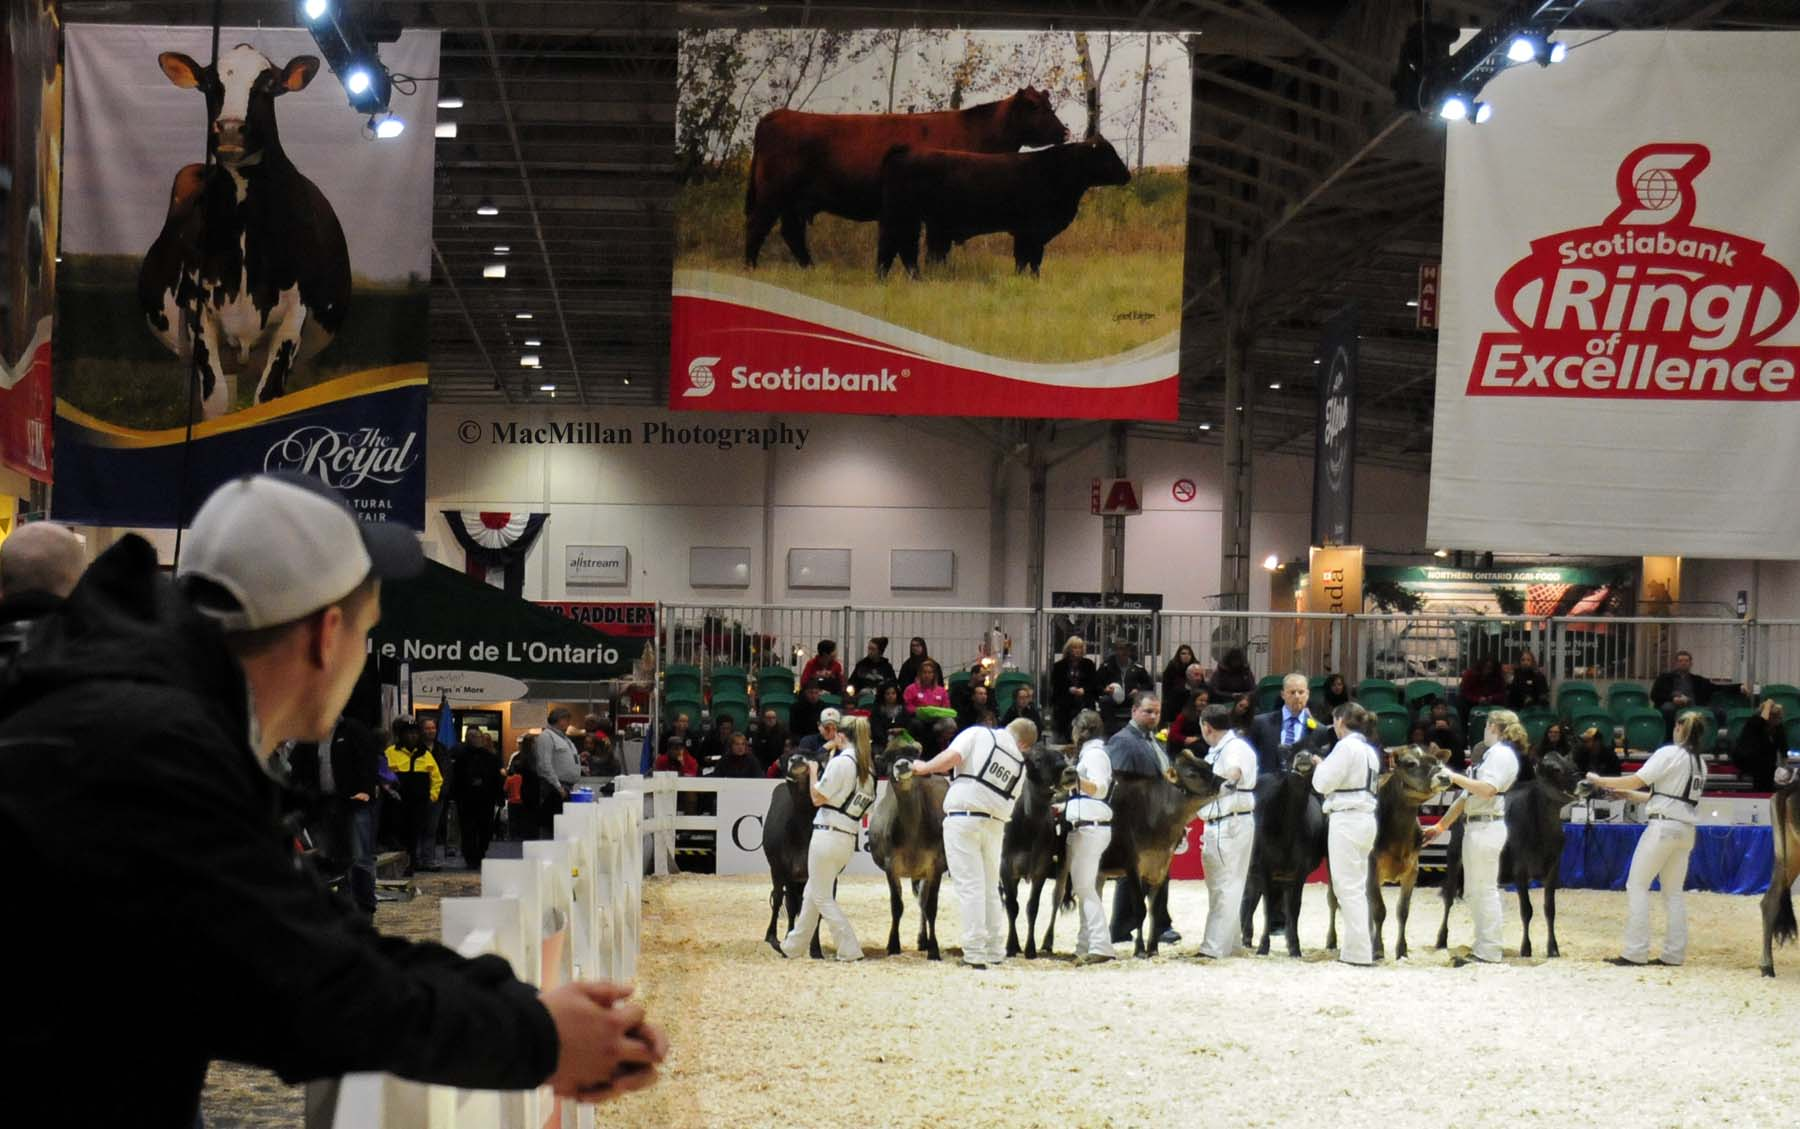 Photo 45 – Contestants in the Canadian National Jersey Cattle Show at the 2015 Royal Winter FairPhoto by Shelley Higgins/MacMillan Photography